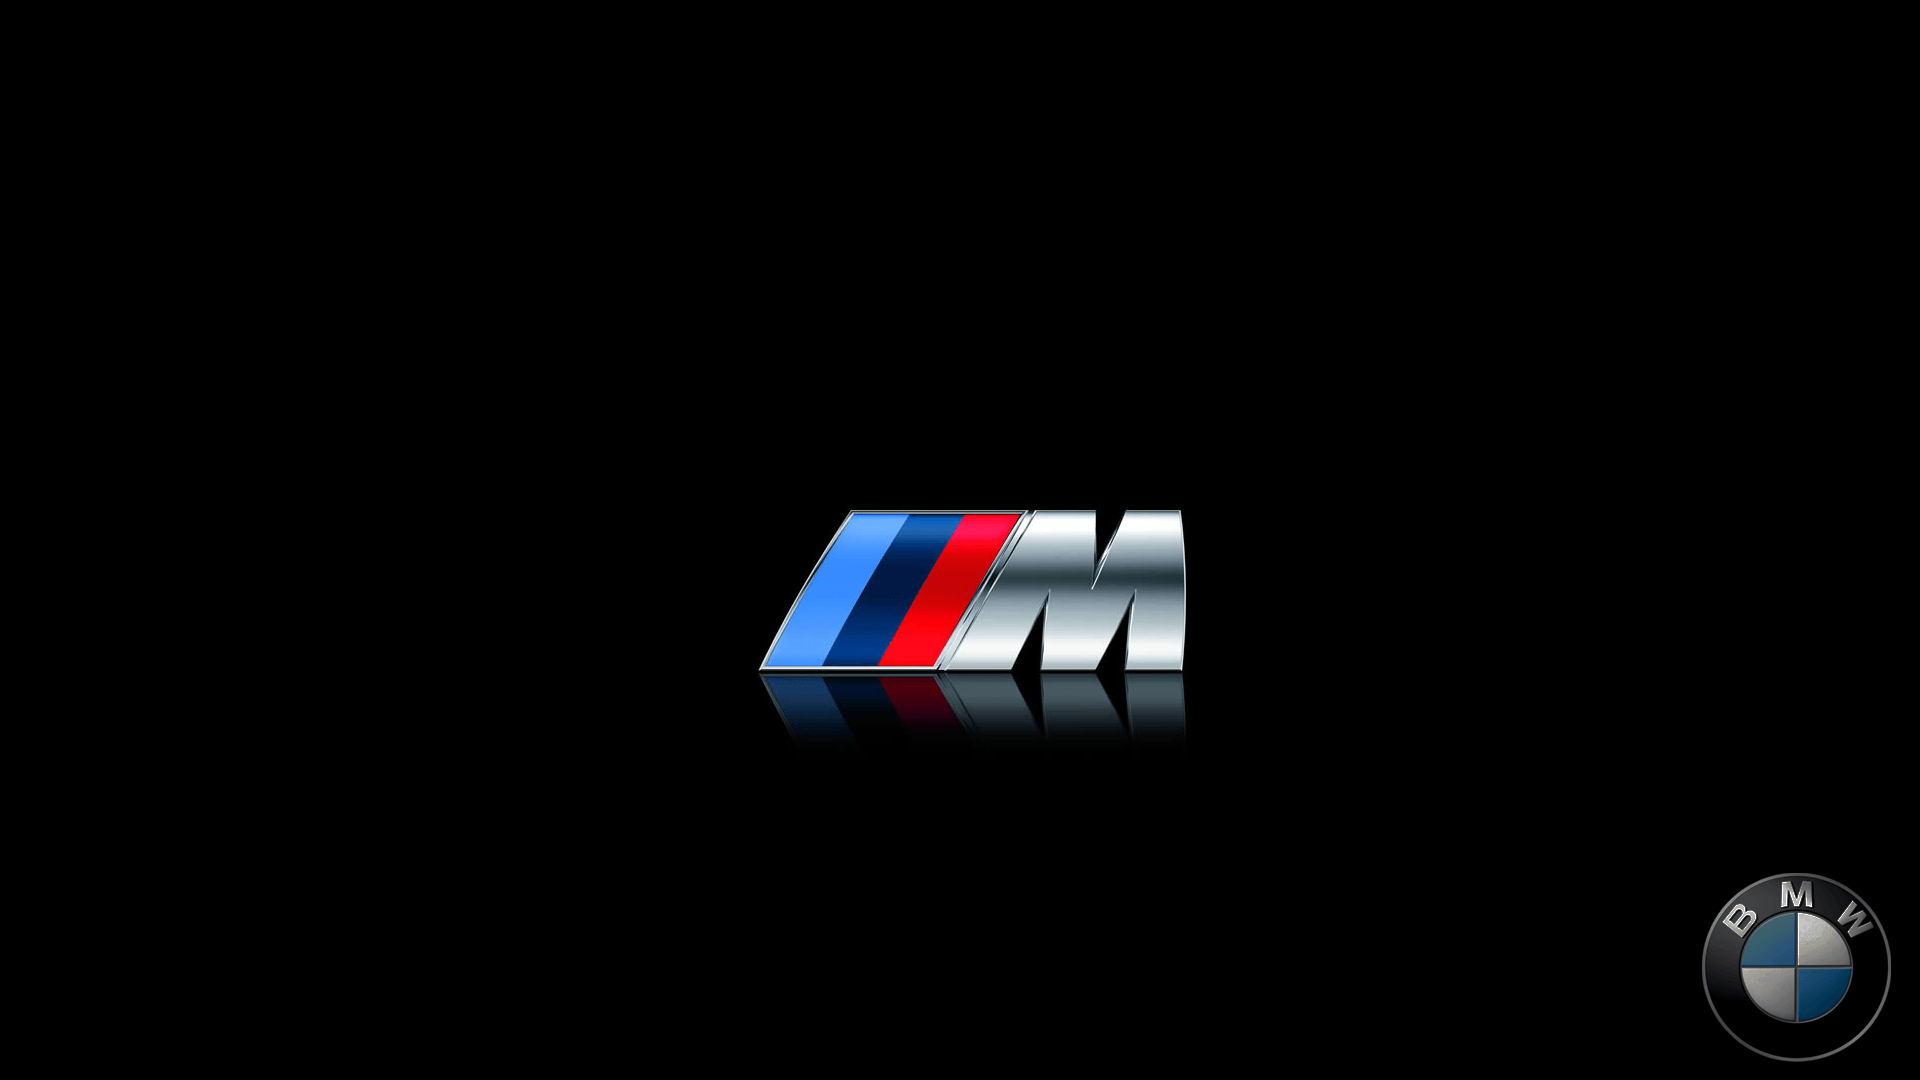 bmw m logo wallpaper 700450